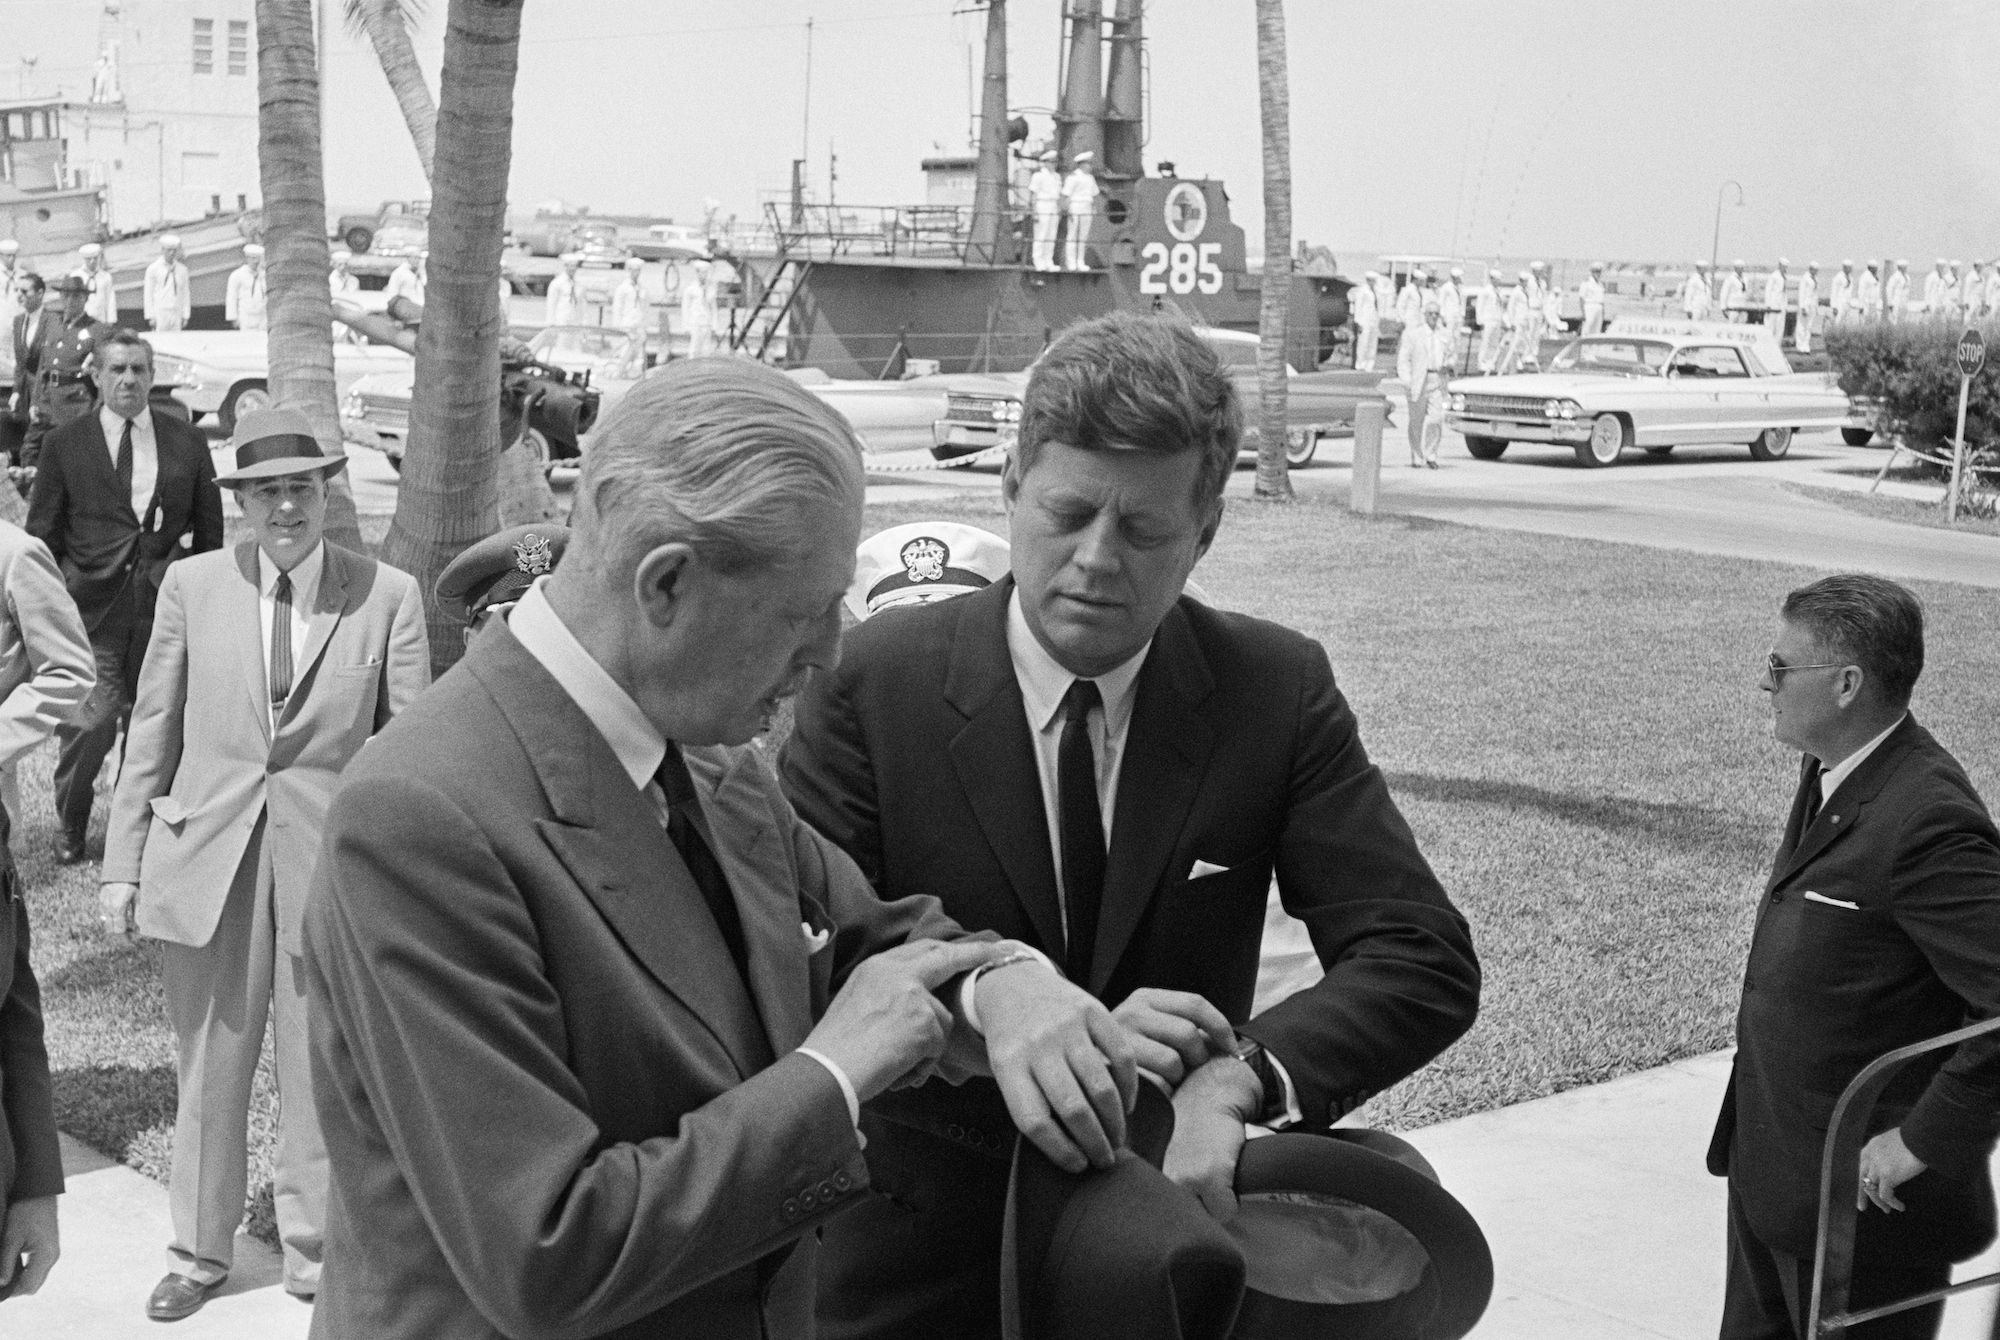 (Original Caption) Kennedy and Macmillan Sync Watches. Key West, Fla.: President Kennedy and British Prime Minister Harold Macmillan synchronize their watches as they part outside the Administration Building at the Naval Base here after arrival today. The Prime Minister went to a meeting room in the Administration Building, but the Chief Executive went to the Little White House on the base. They meet later today on the Laos crisis.